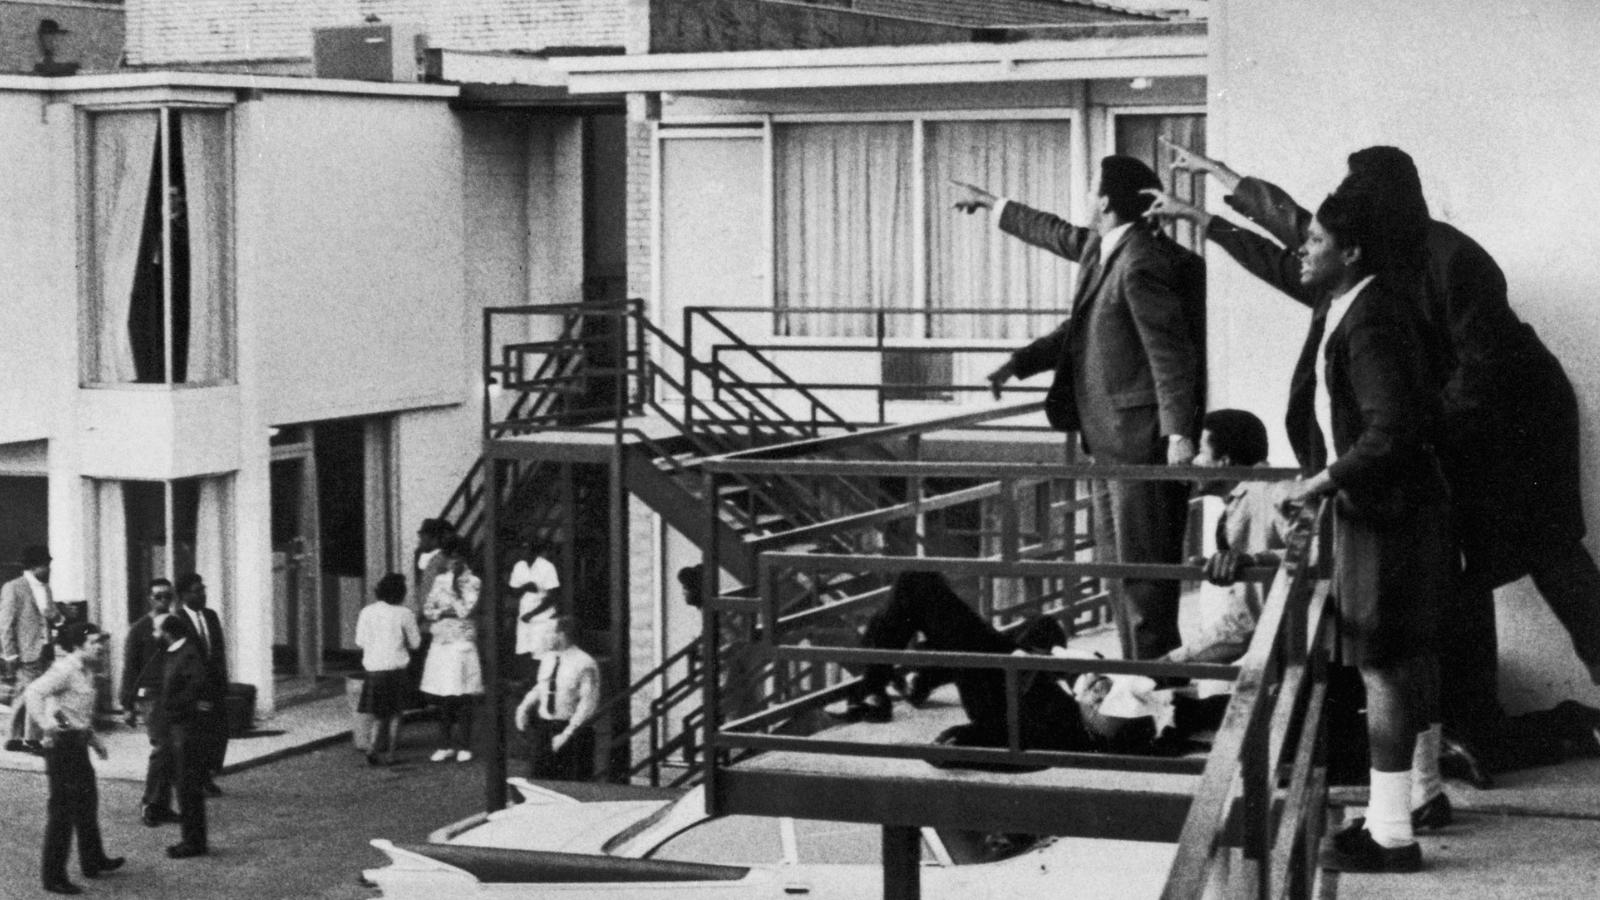 Image of Martin Luther King on the floor with people around him on a balcony - pointing to where the gunman shot him.